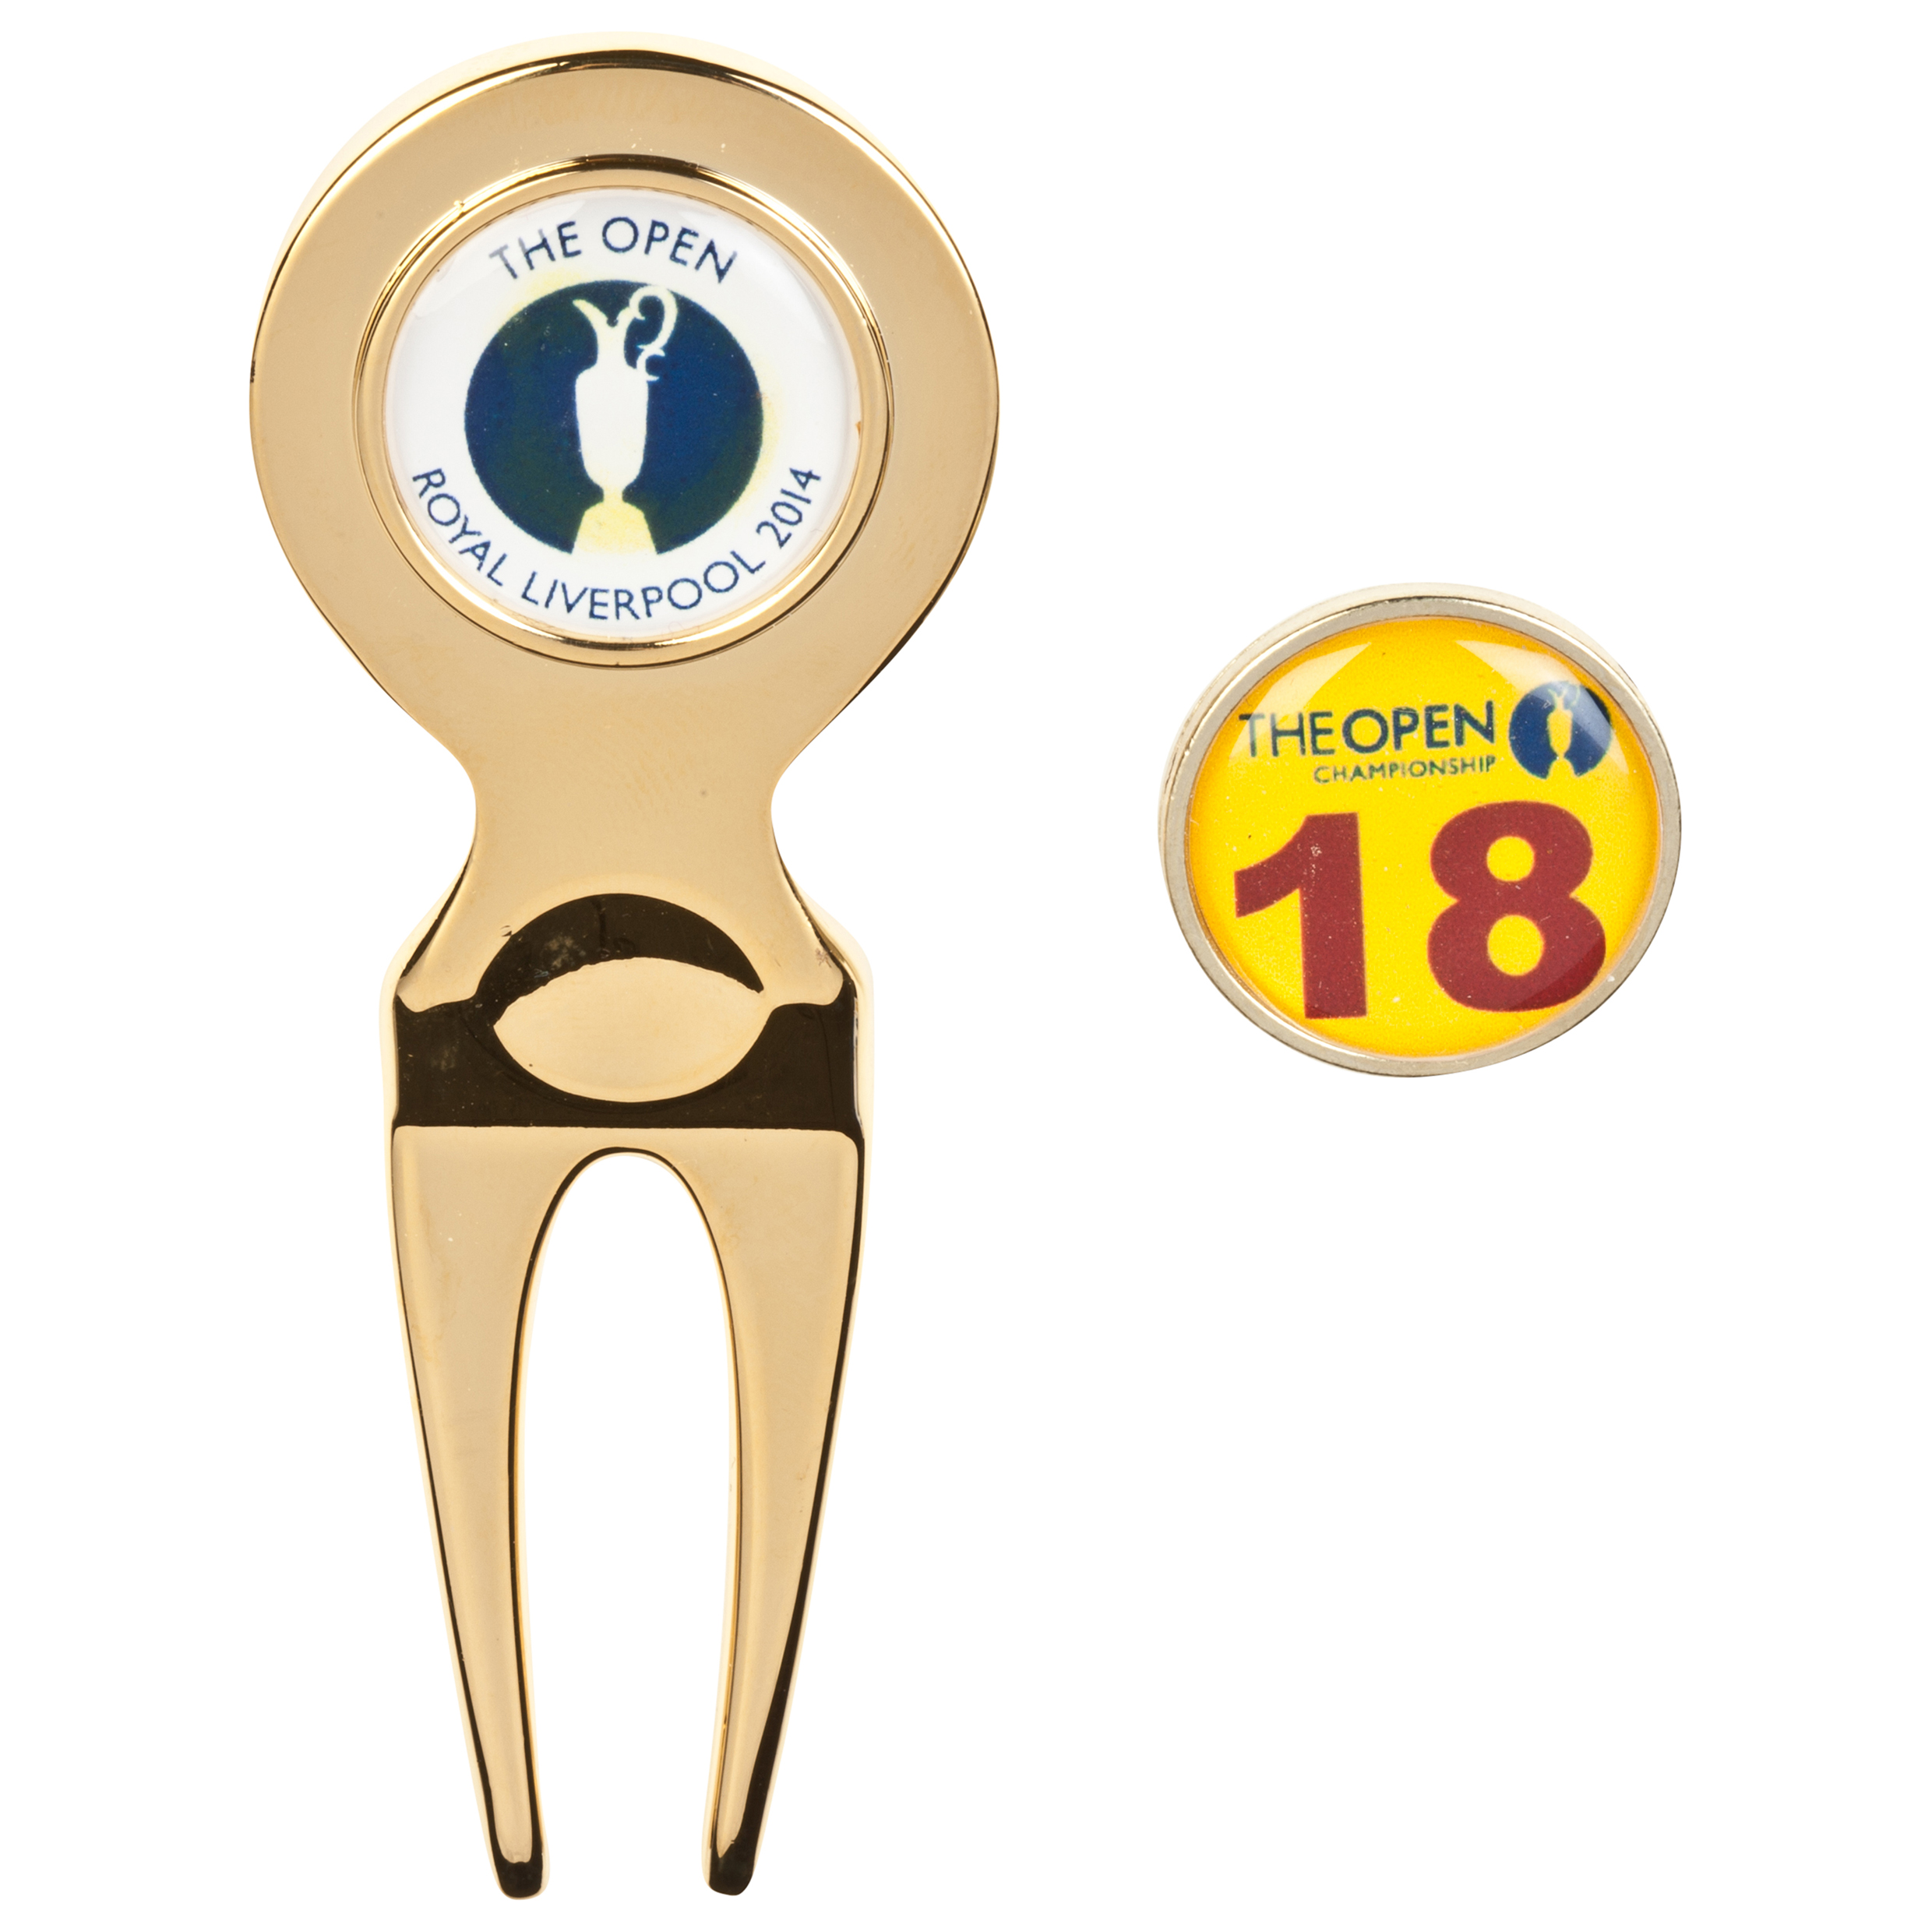 The Open Championship Royal Liverpool 2014 Pitchfork & Ballmarker